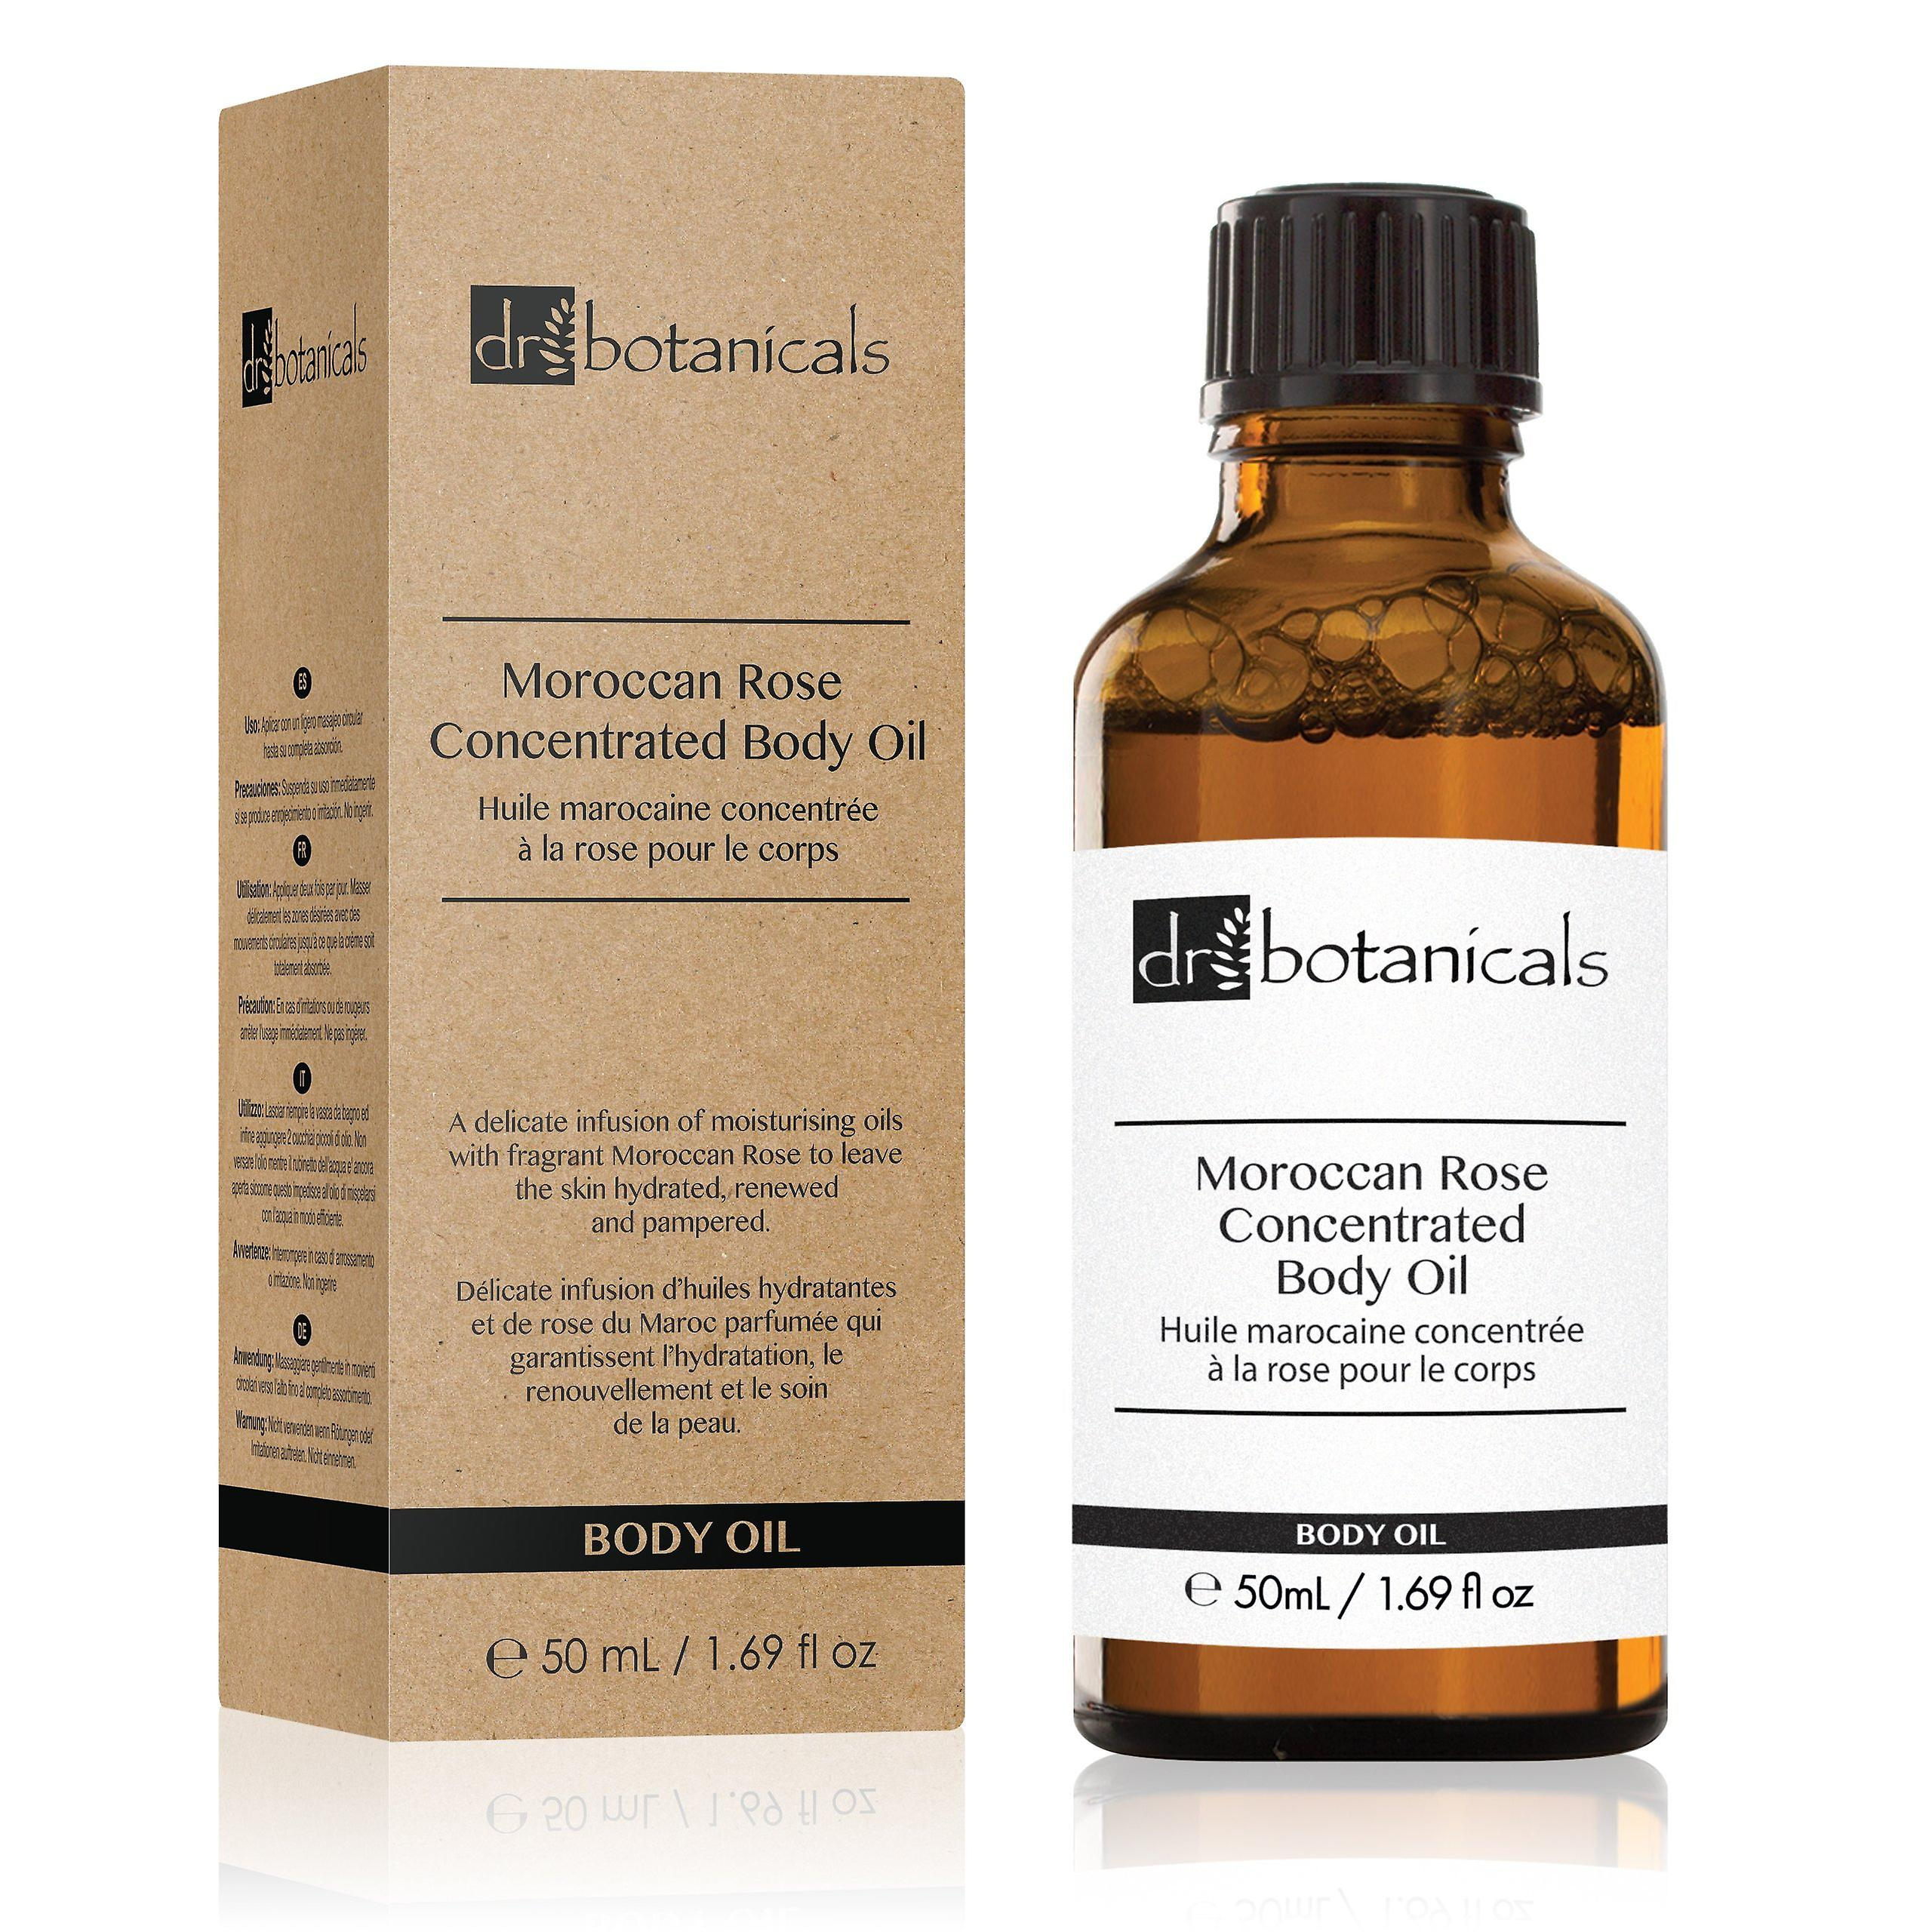 Moroccan rose concentrated body oil